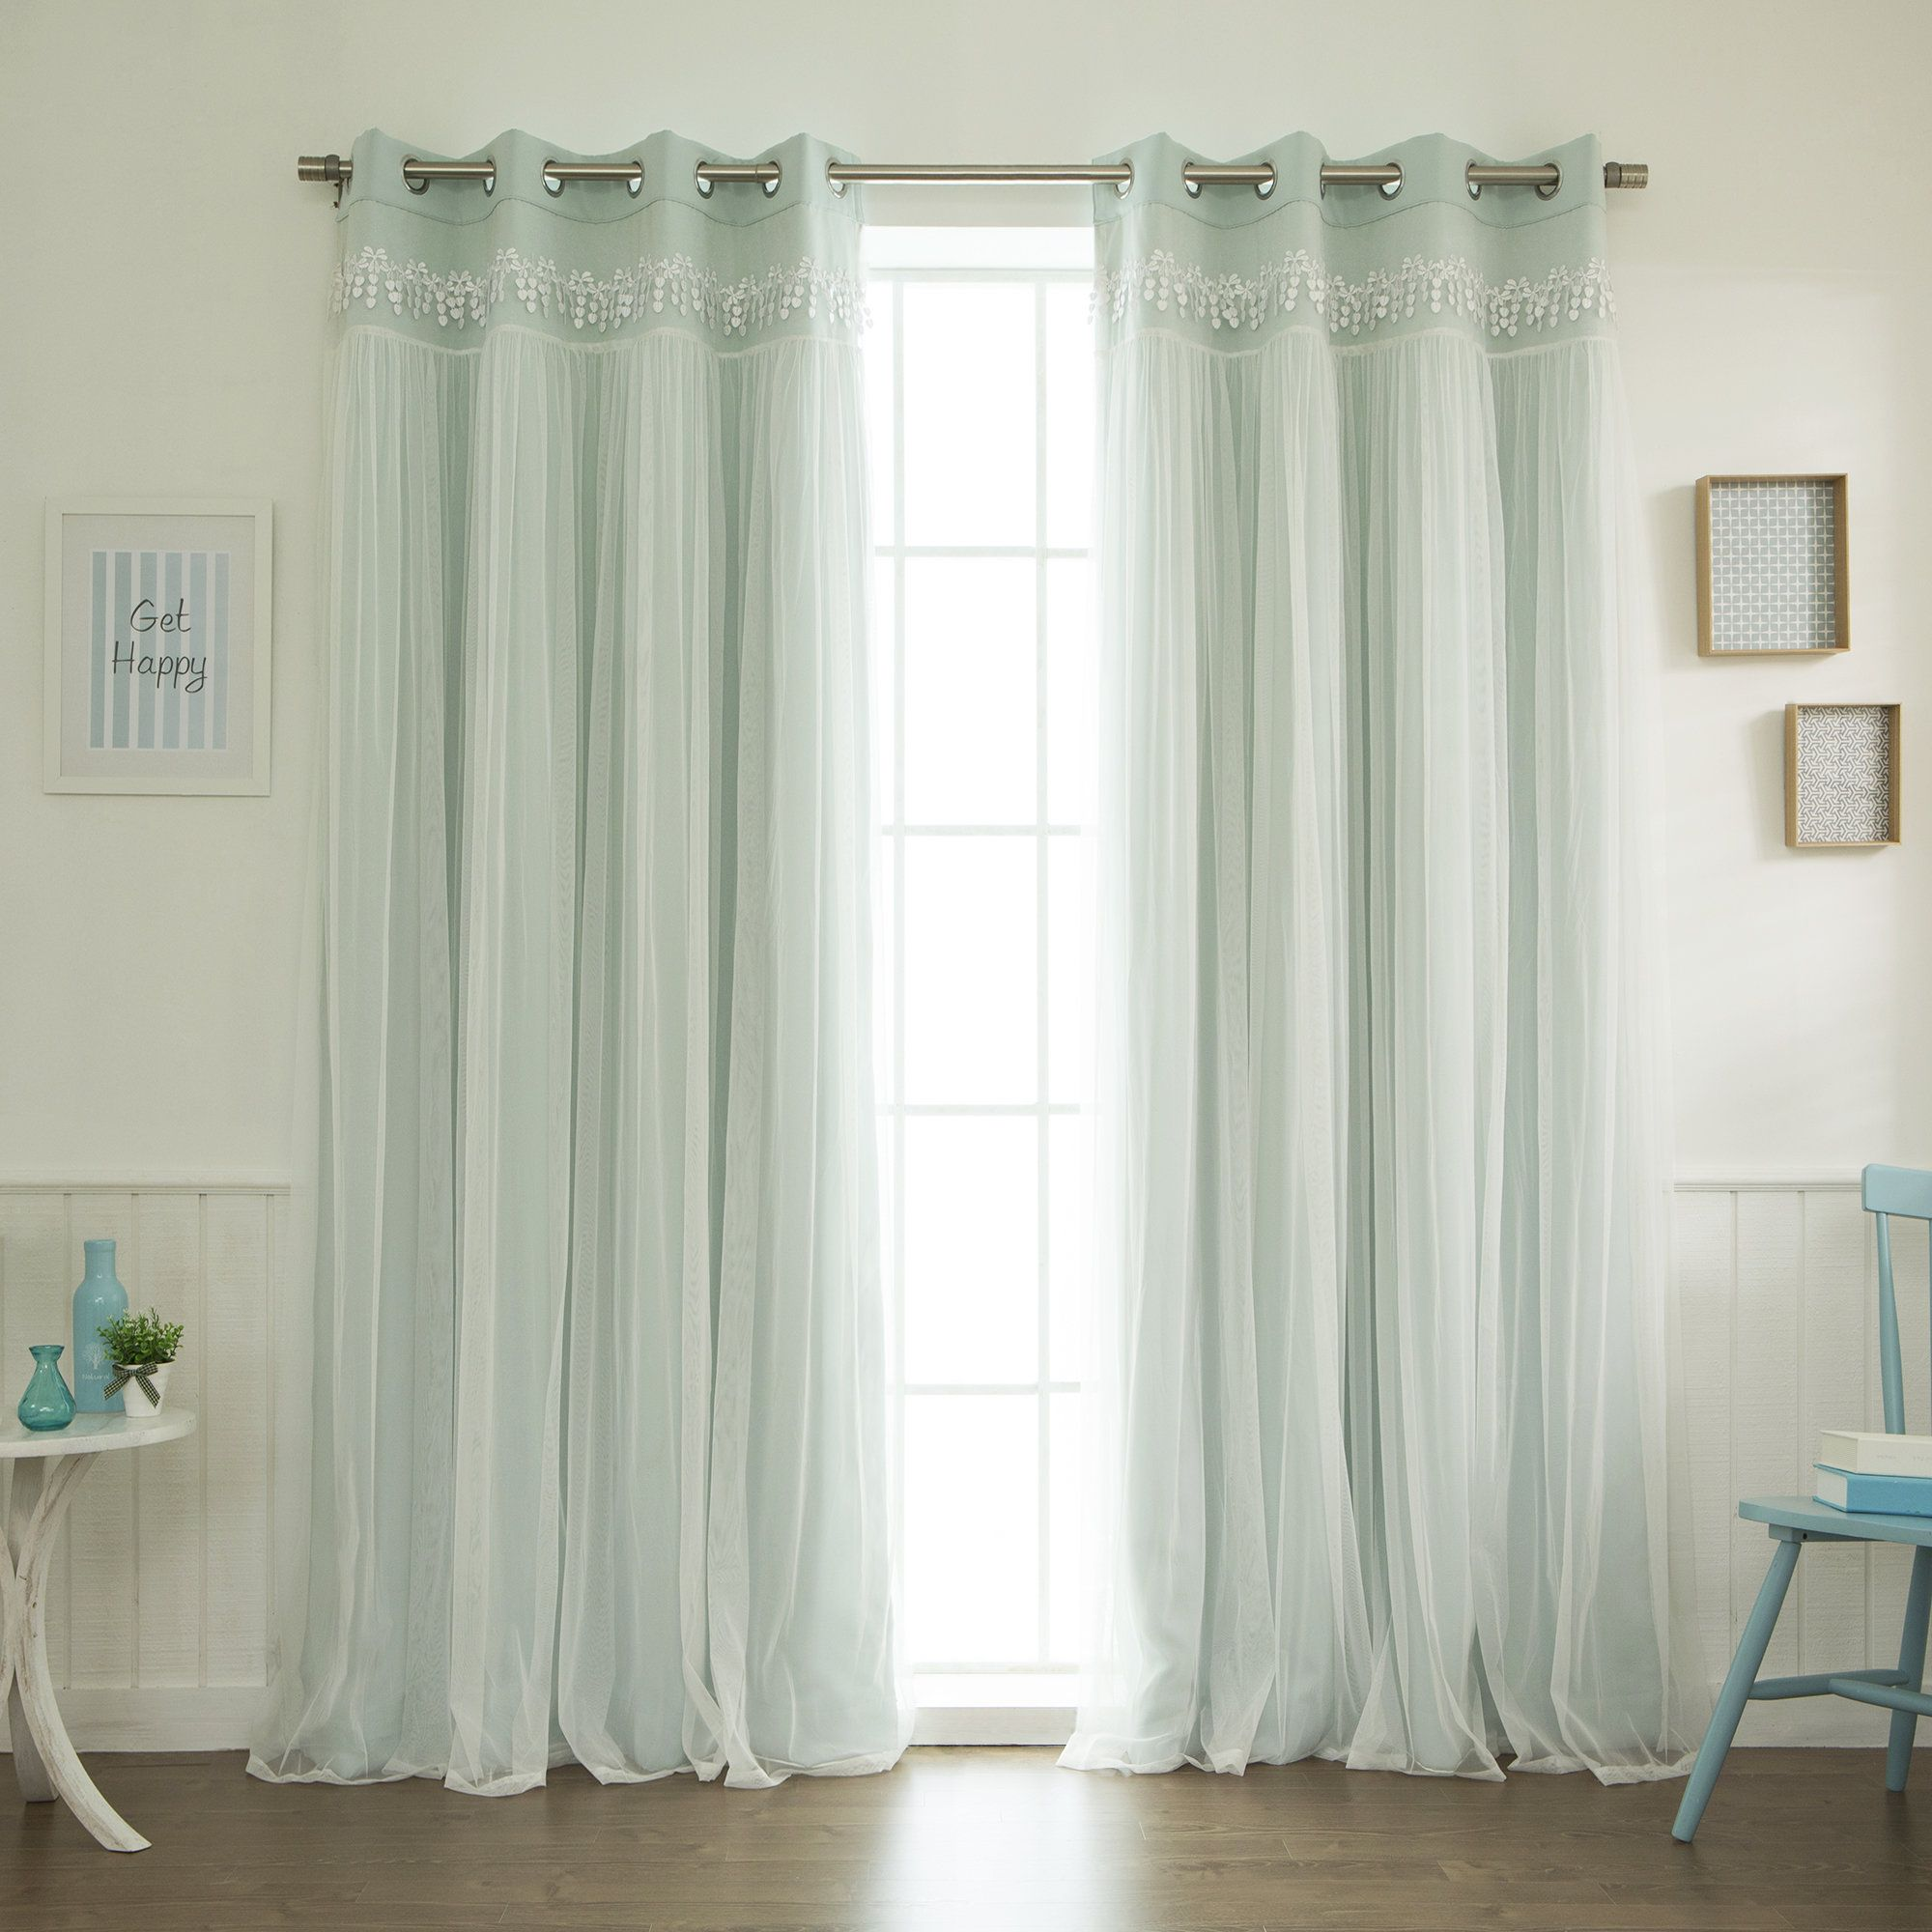 curtain blackout mainstays energy efficient panel rods x dimensions curtains set with pink grommet rod